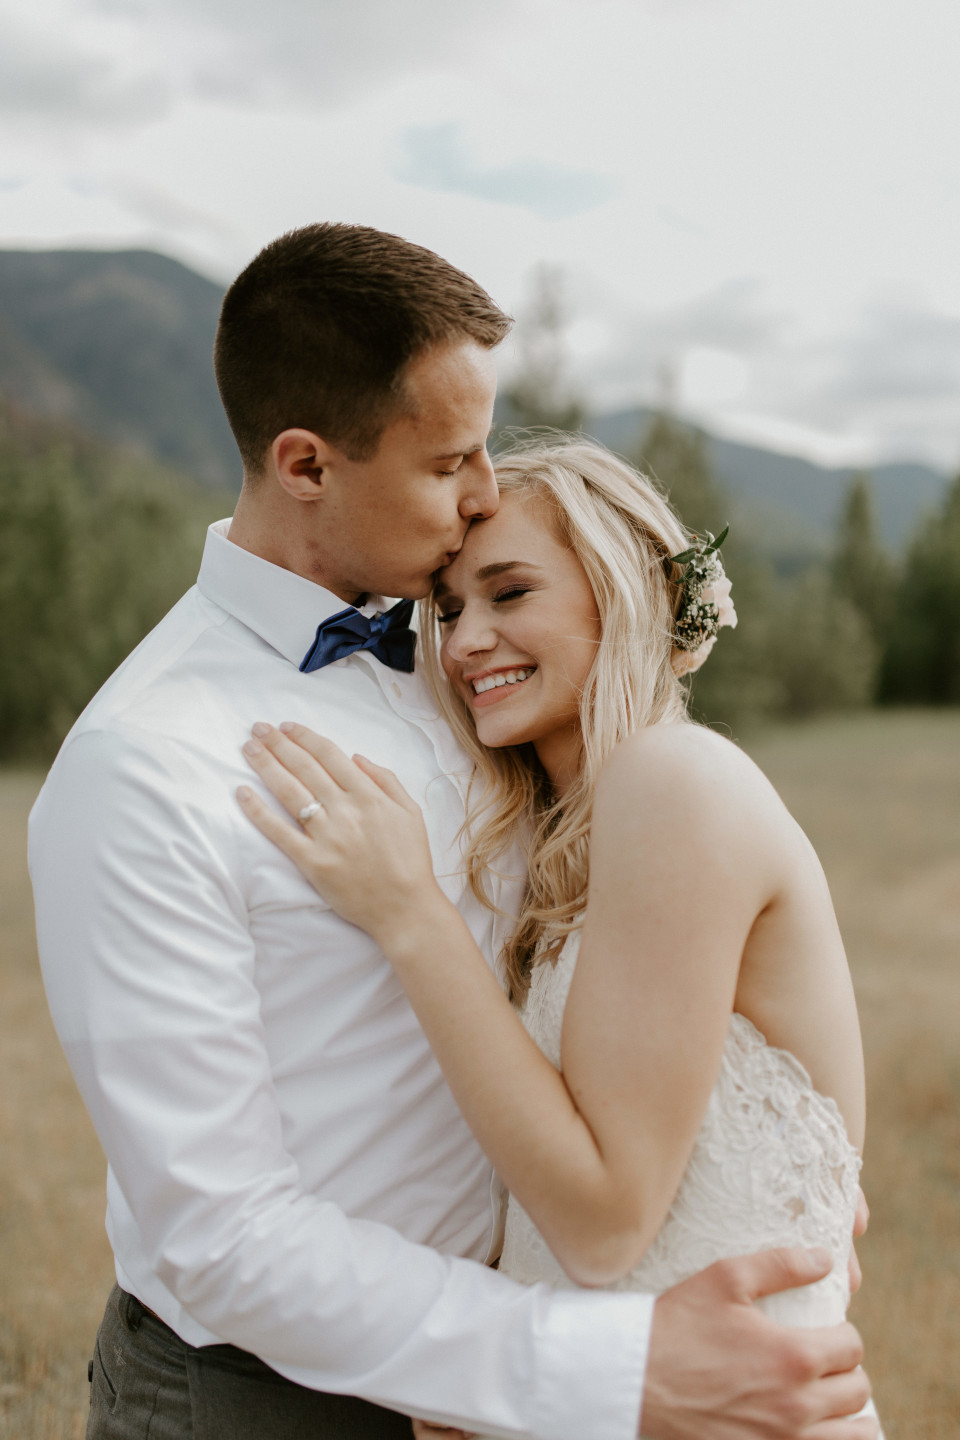 Trevor kisses Harper's forehead at Cascade Locks, Oregon. Elopement photography in Portland Oregon by Sienna Plus Josh.